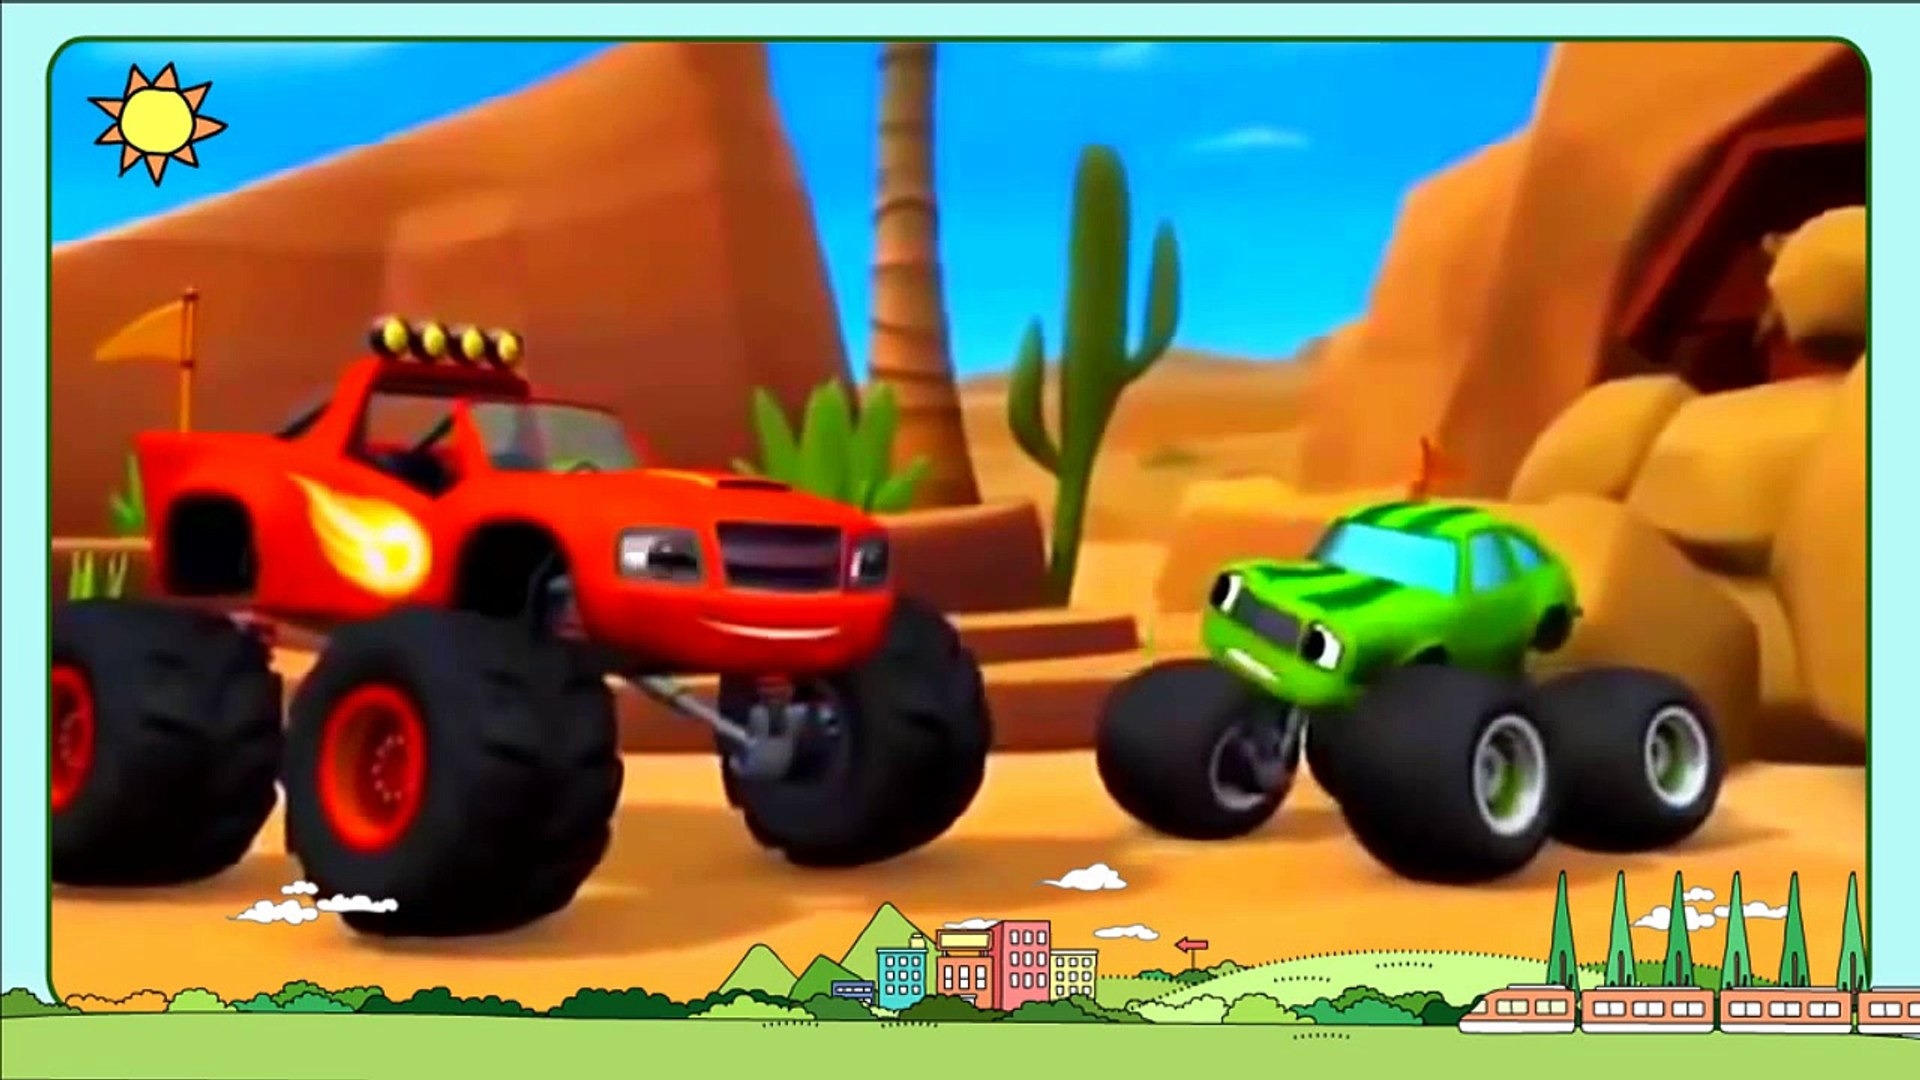 Blaze And The Monster Machines Full Episodes-2 English 1010 - Blaze Cartoon New Series 2016 - ✤✓